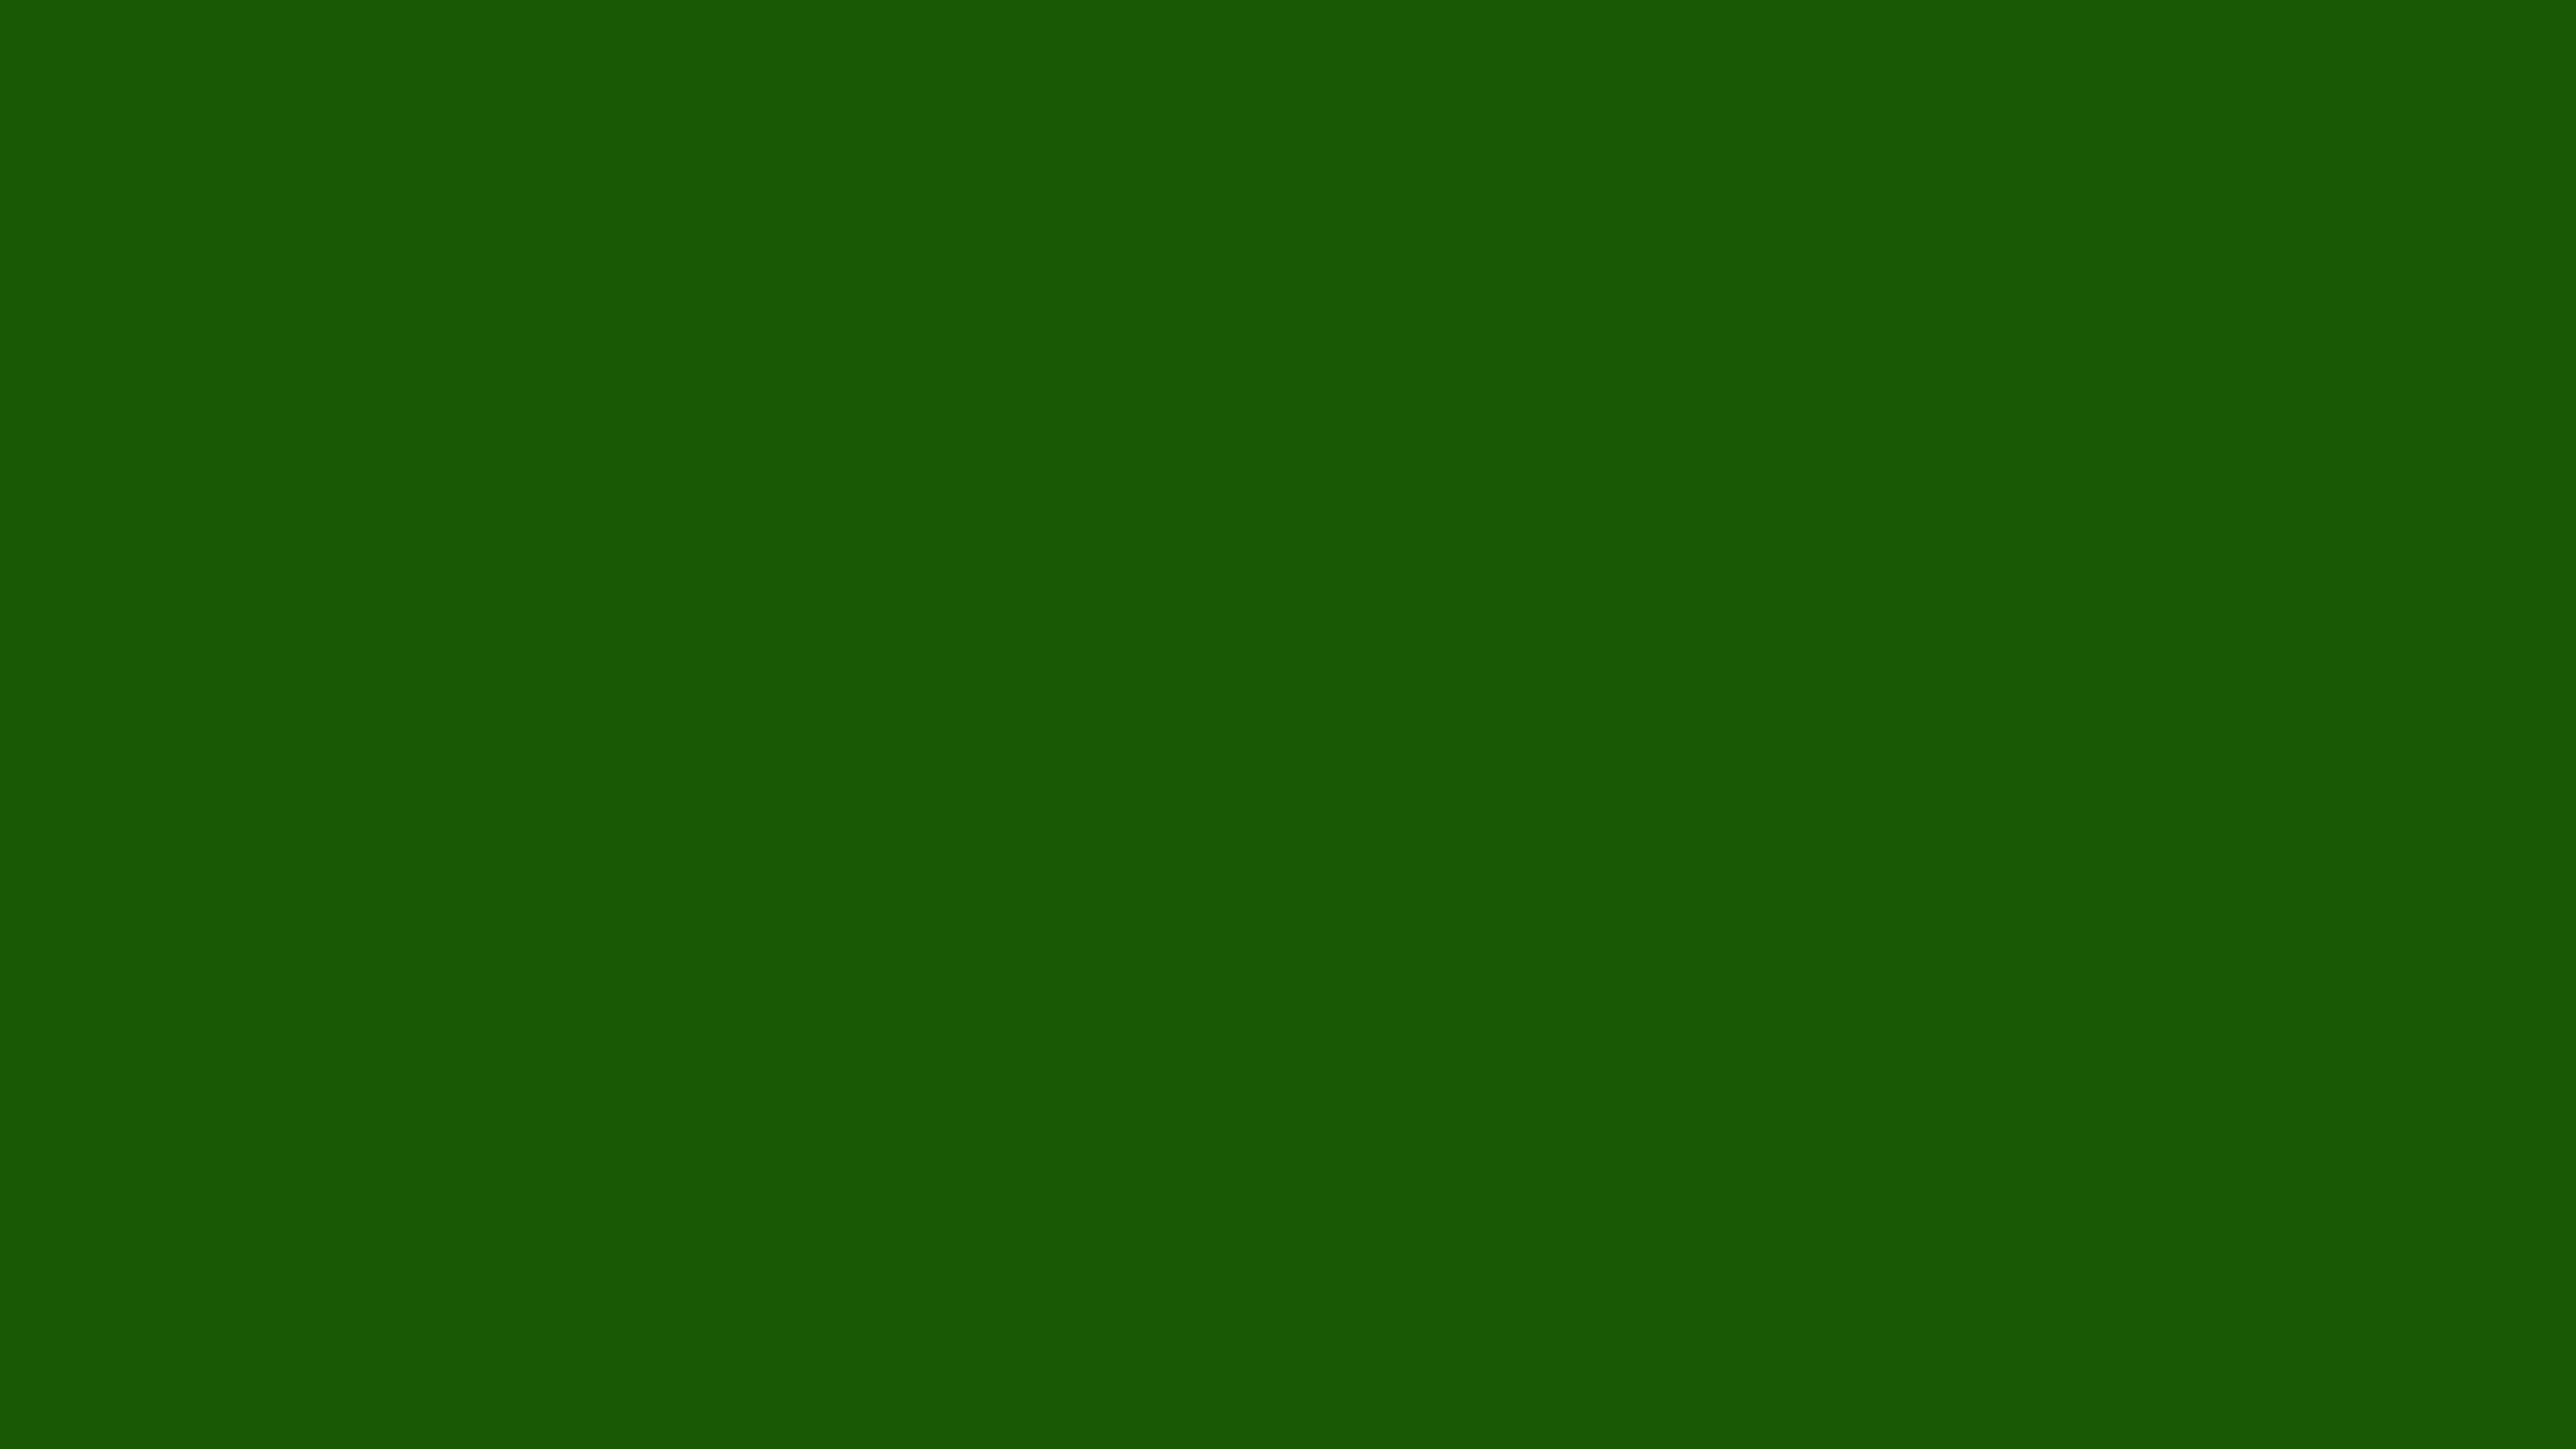 4096x2304 Lincoln Green Solid Color Background